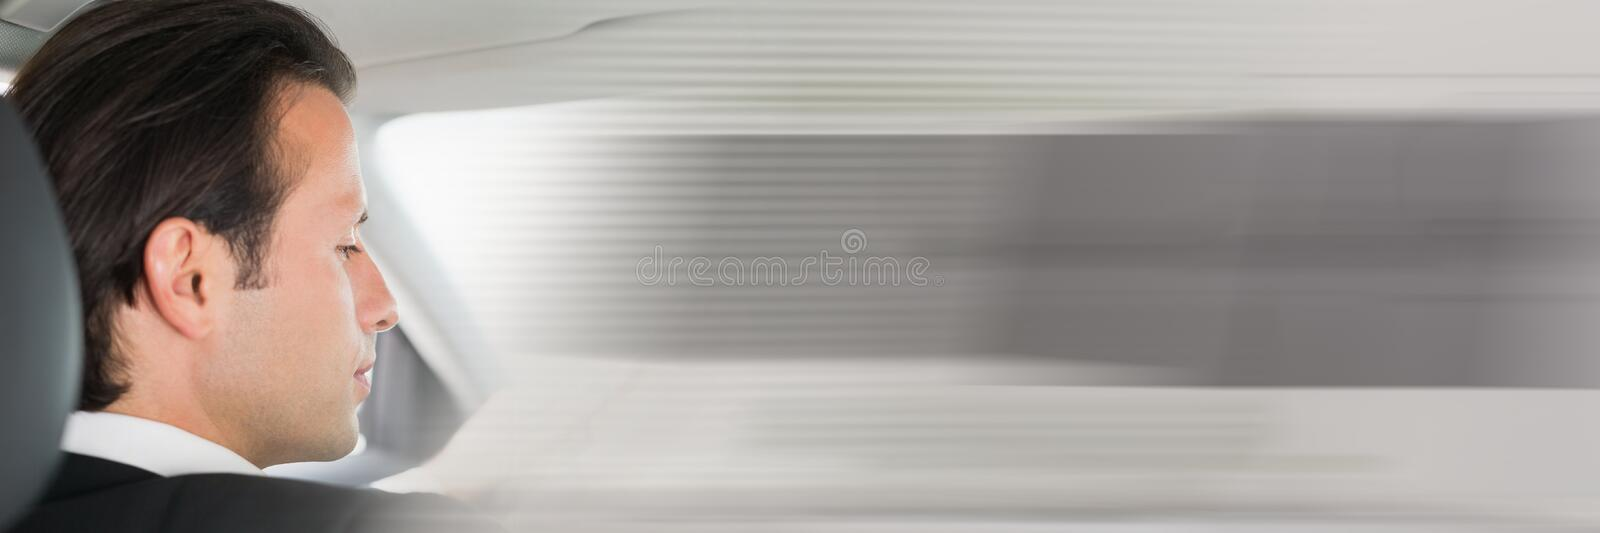 Man in car with transition effect. Digital composite of Man in car with transition effect stock image